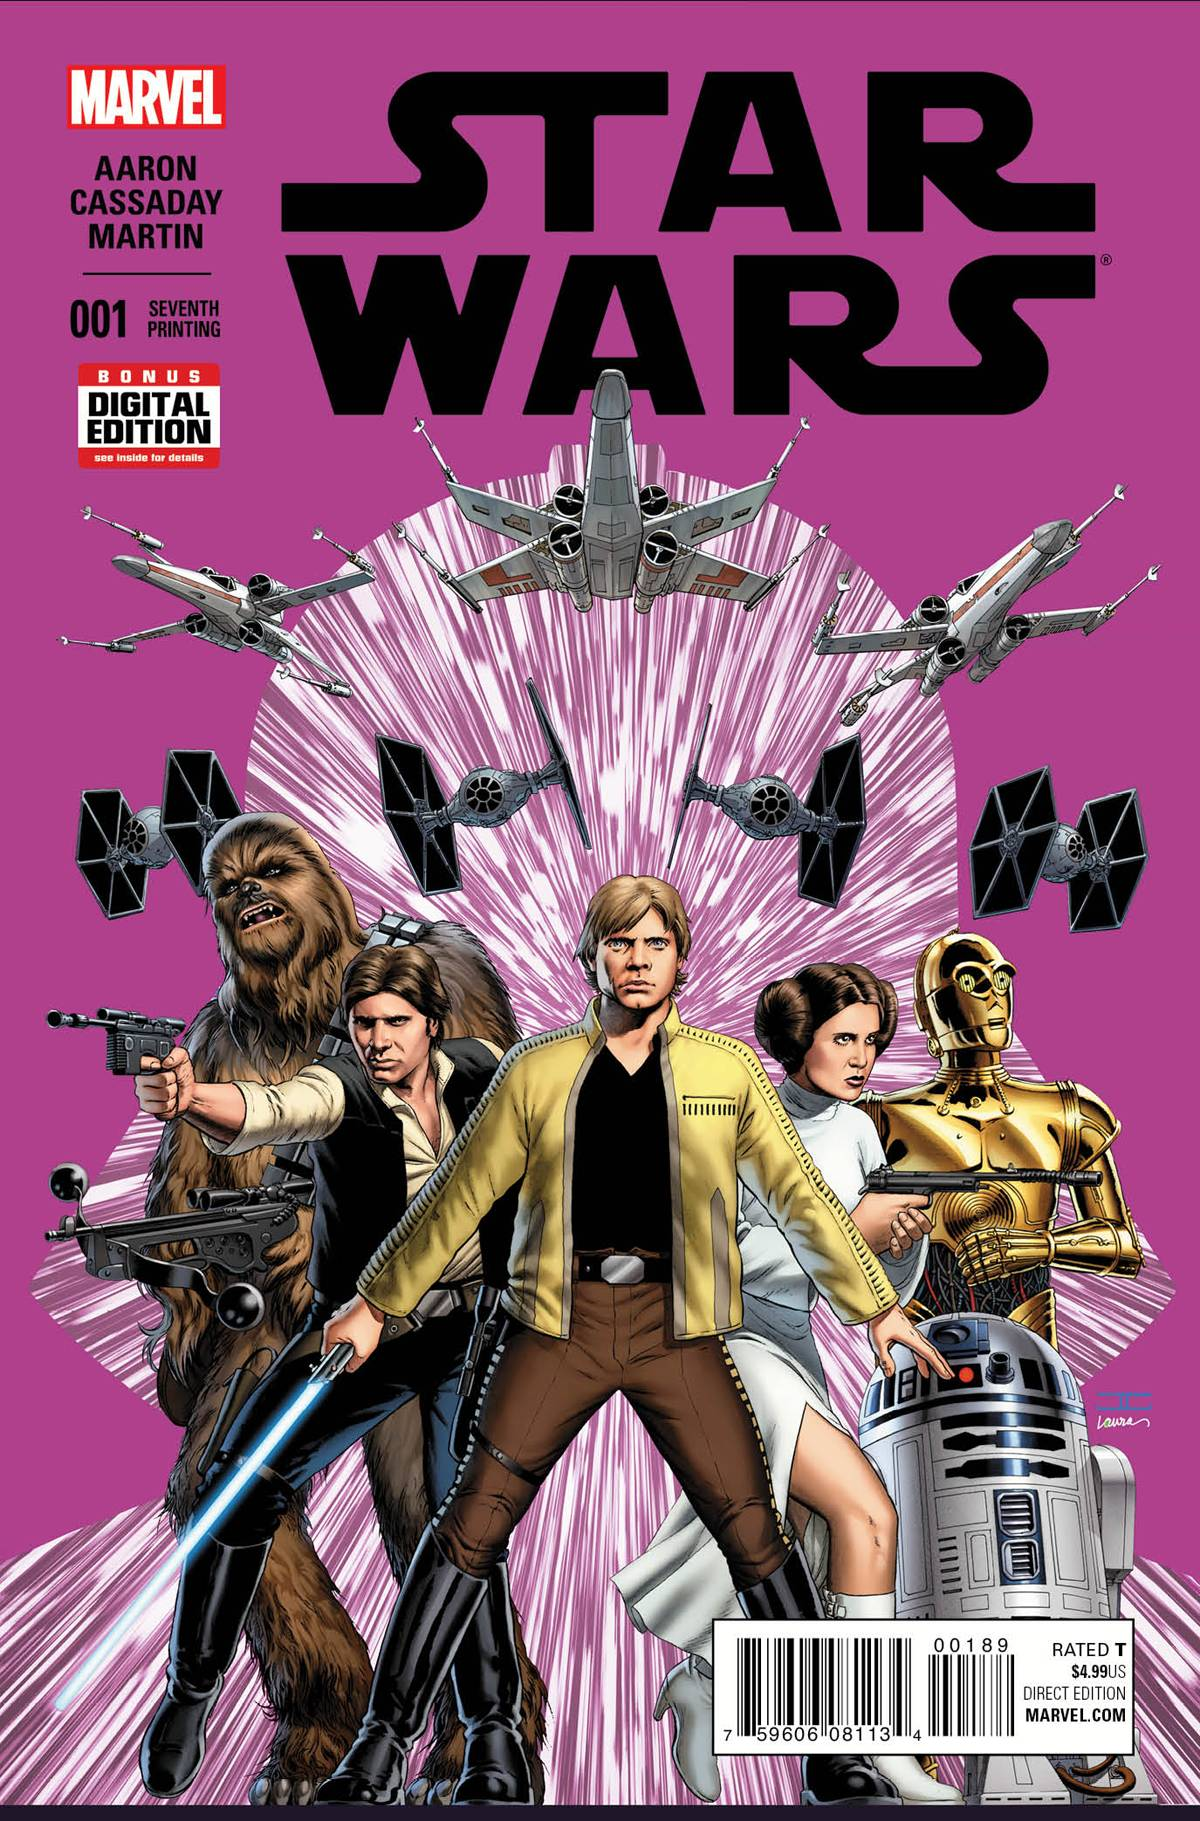 Star Wars #1 (7th Printing) (04.11.2015)